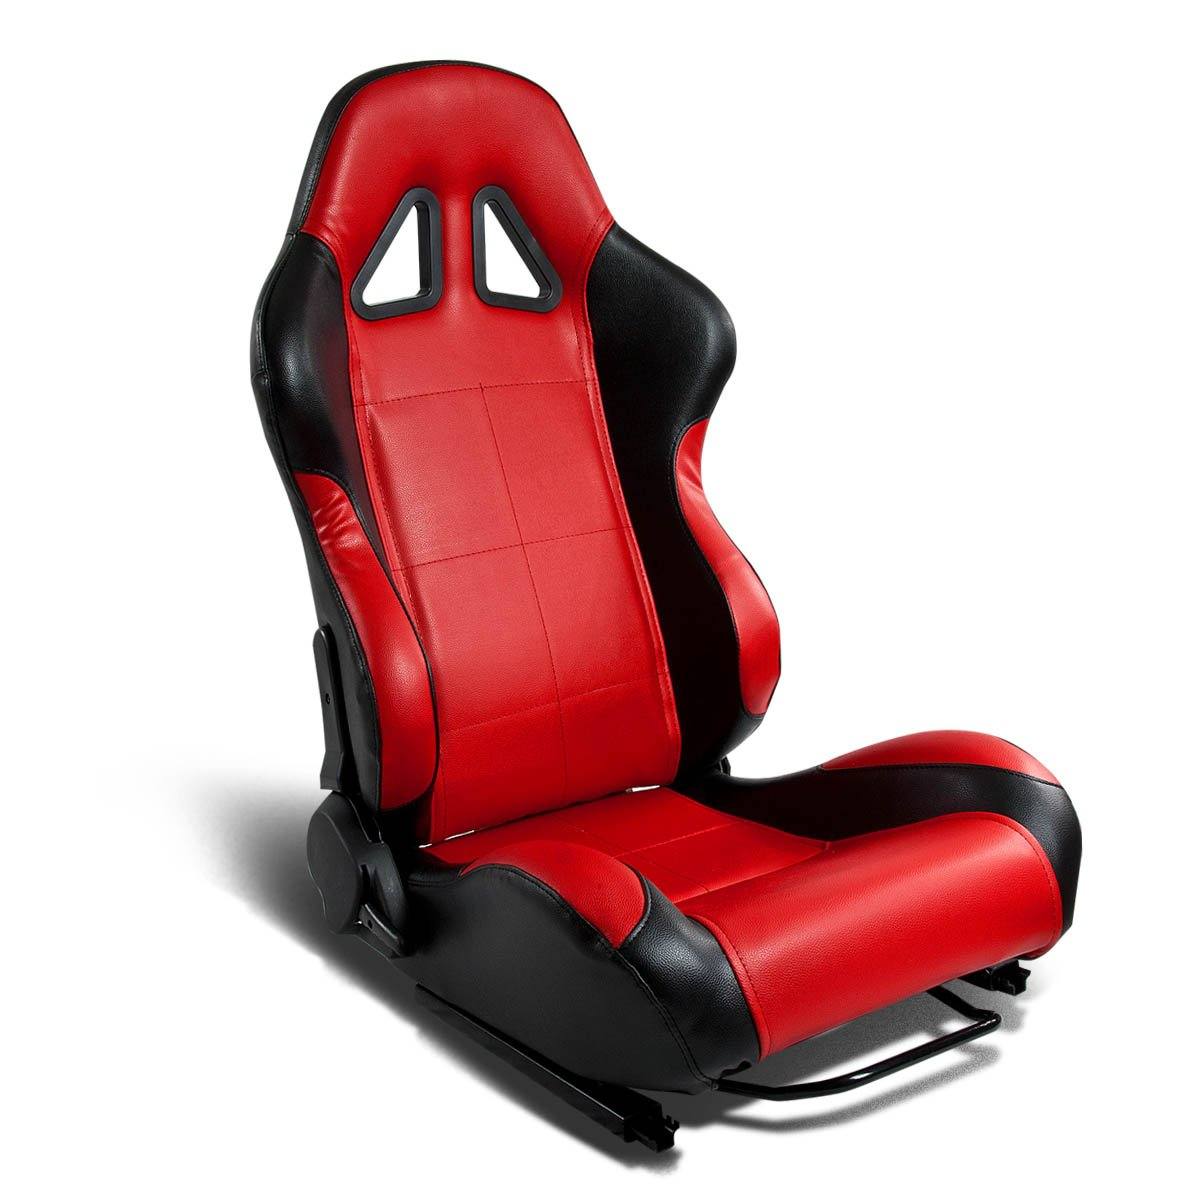 DNA RS-T5-BK-RD-R Red PVC Faux Leather with Black Trim Racing Seat (Right/Passenger Side Only)